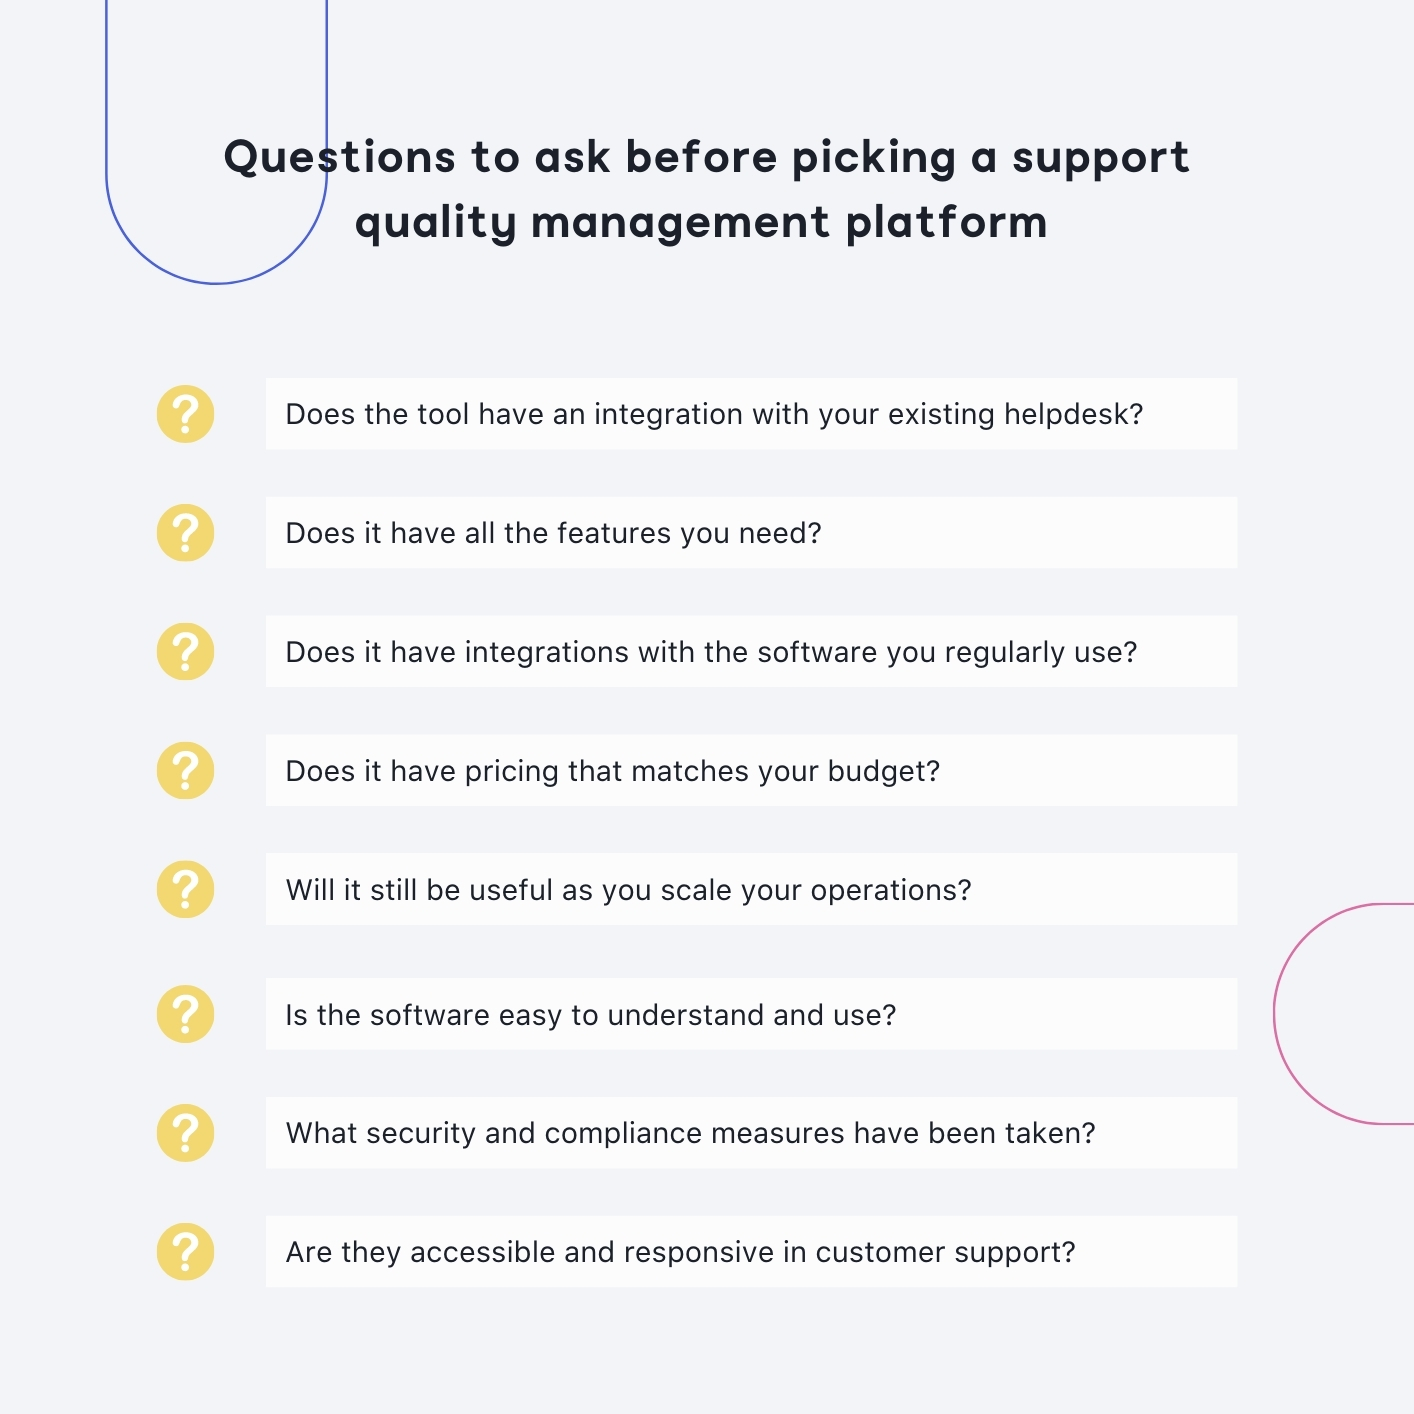 questions to ask before picking a support quality management platform